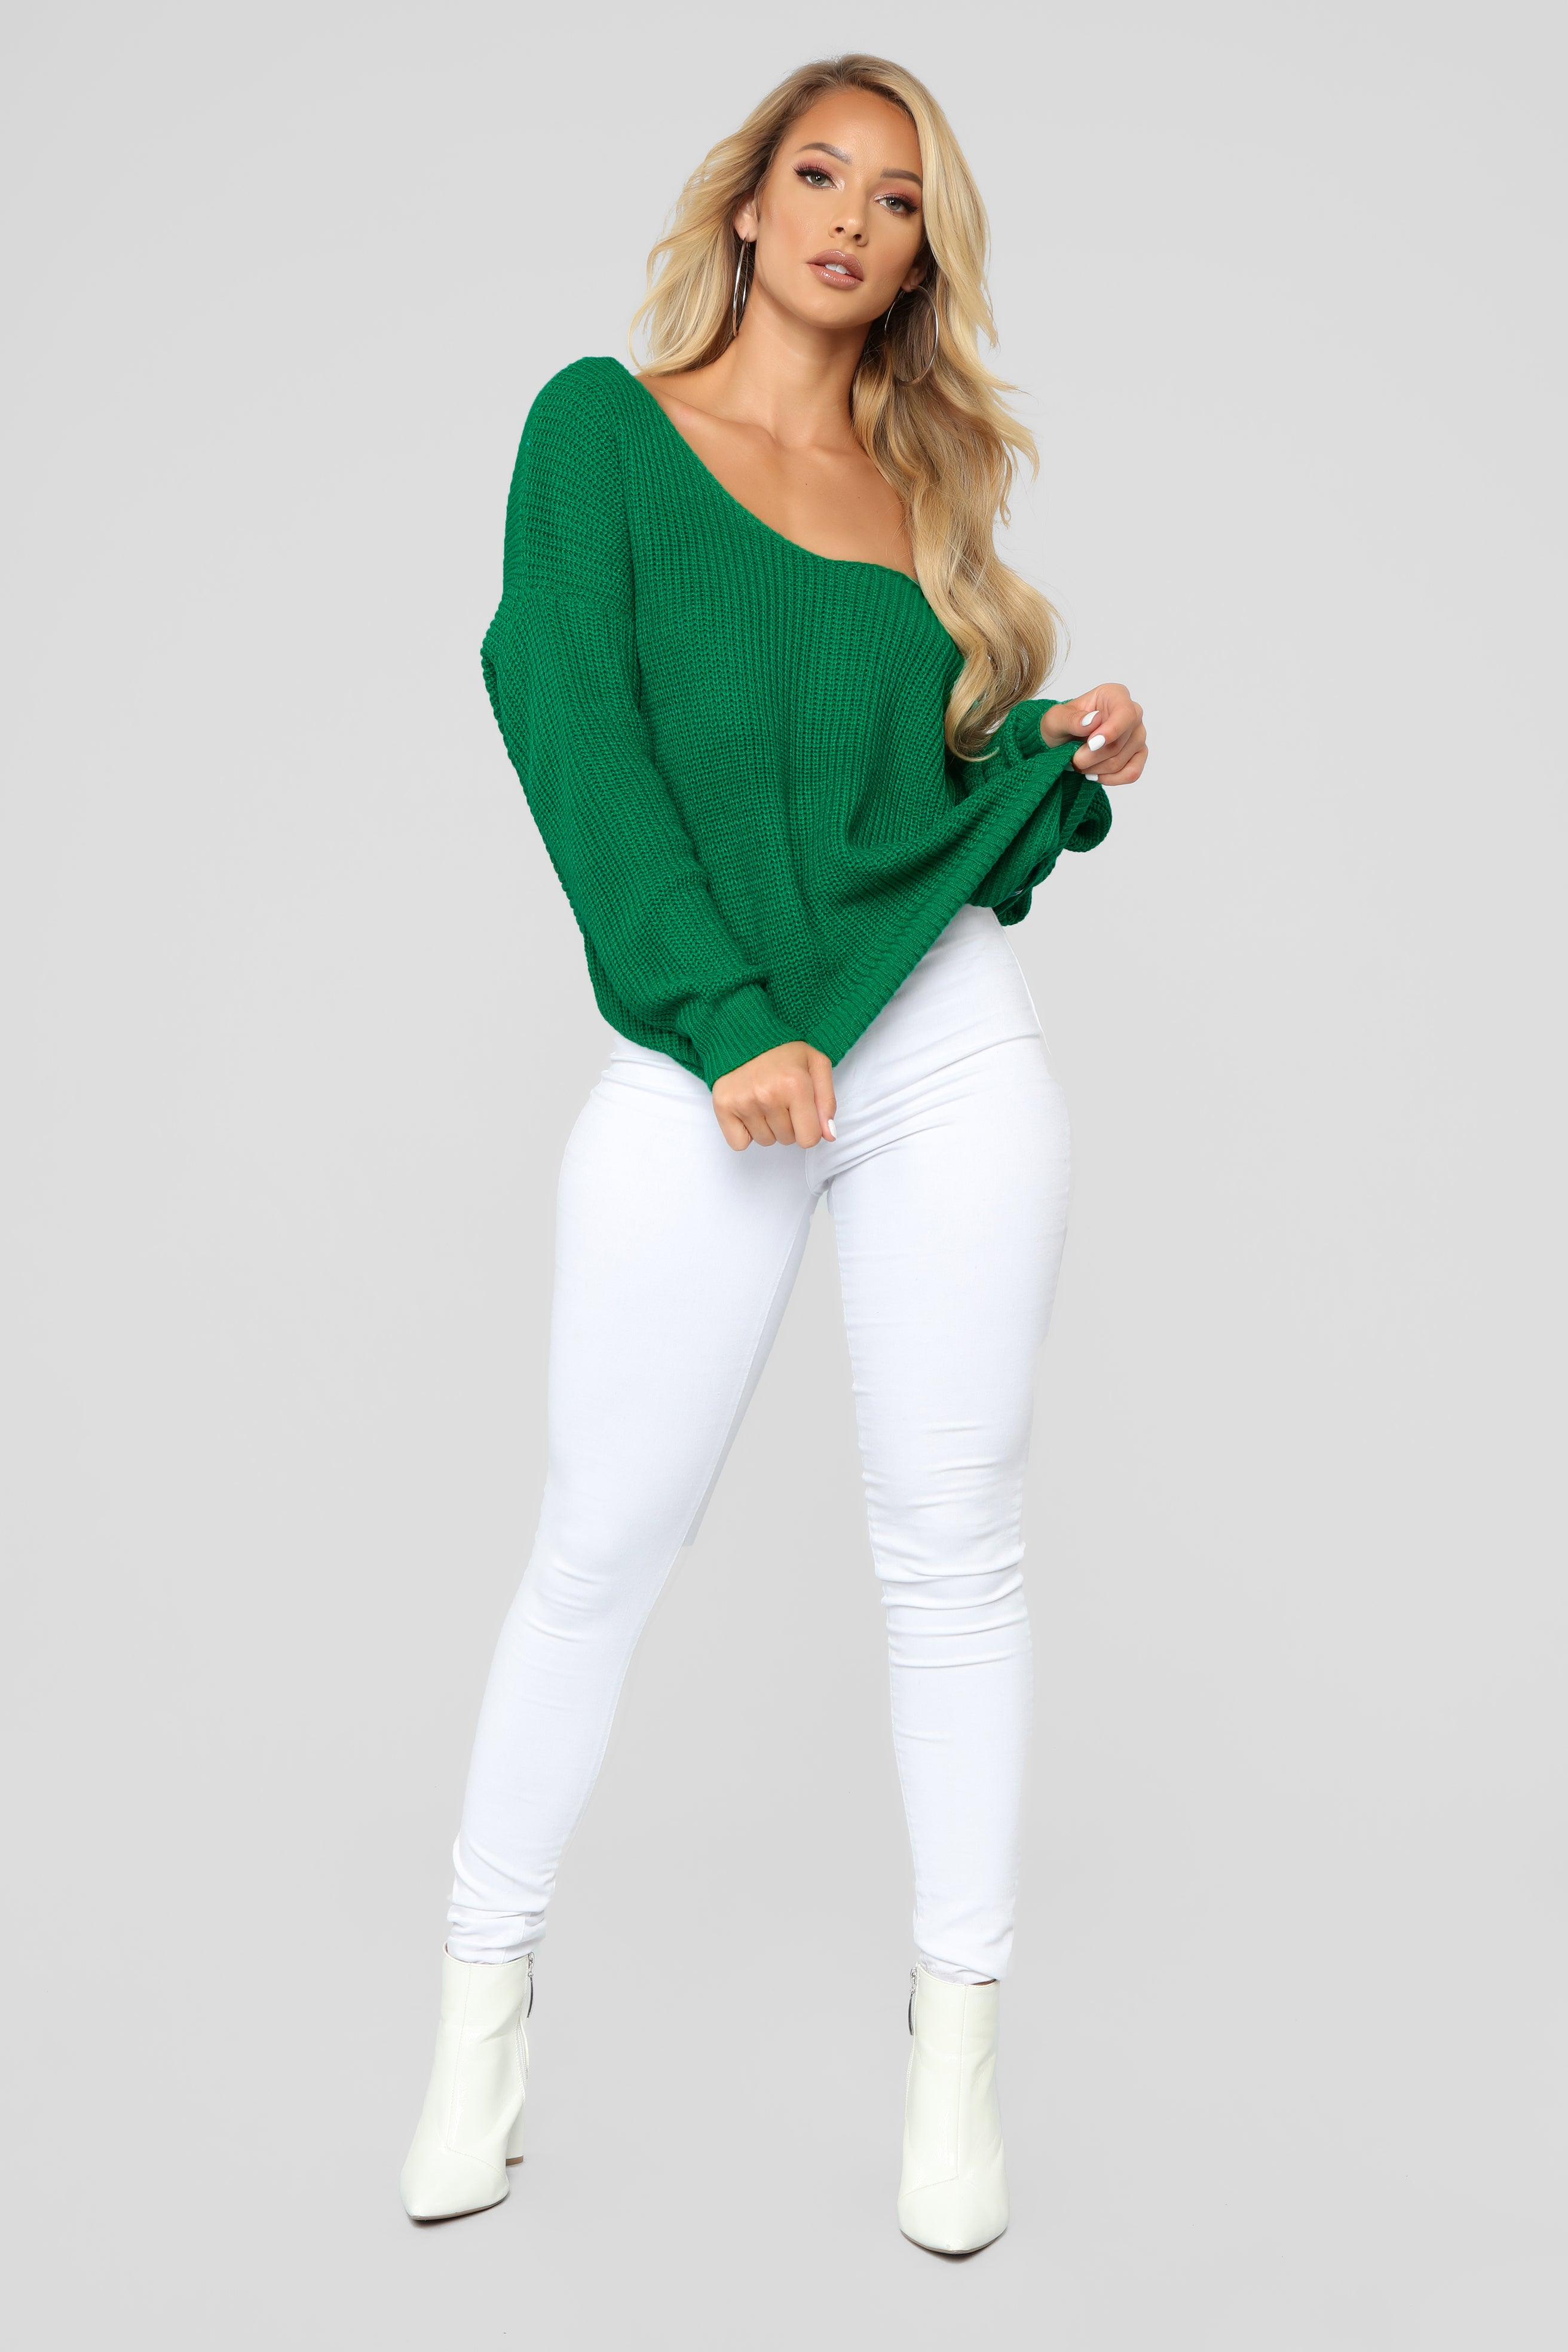 bbc84d8202 Carianna Twist Front Sweater - Kelly Green